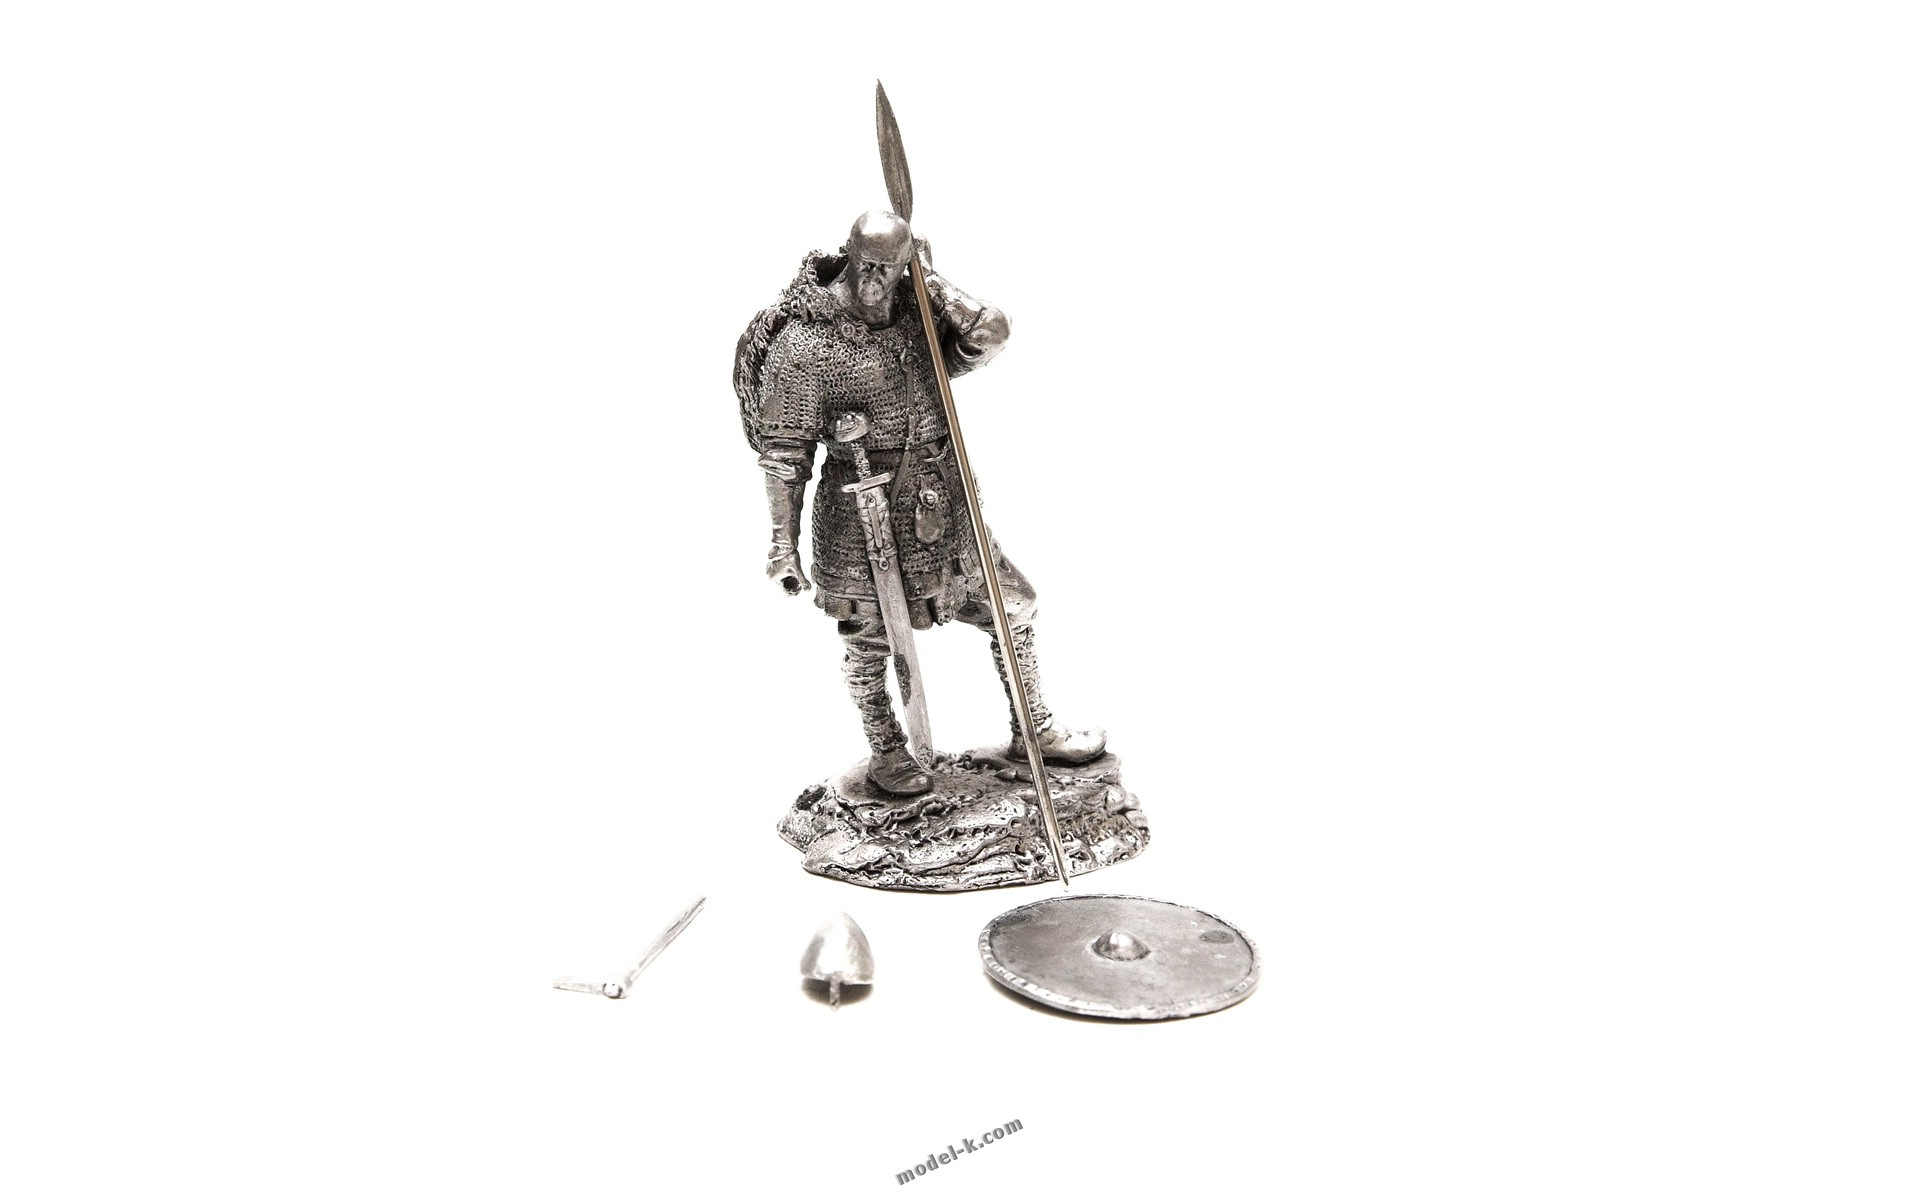 75mm metal sculpture The Heathen Viking Warrior